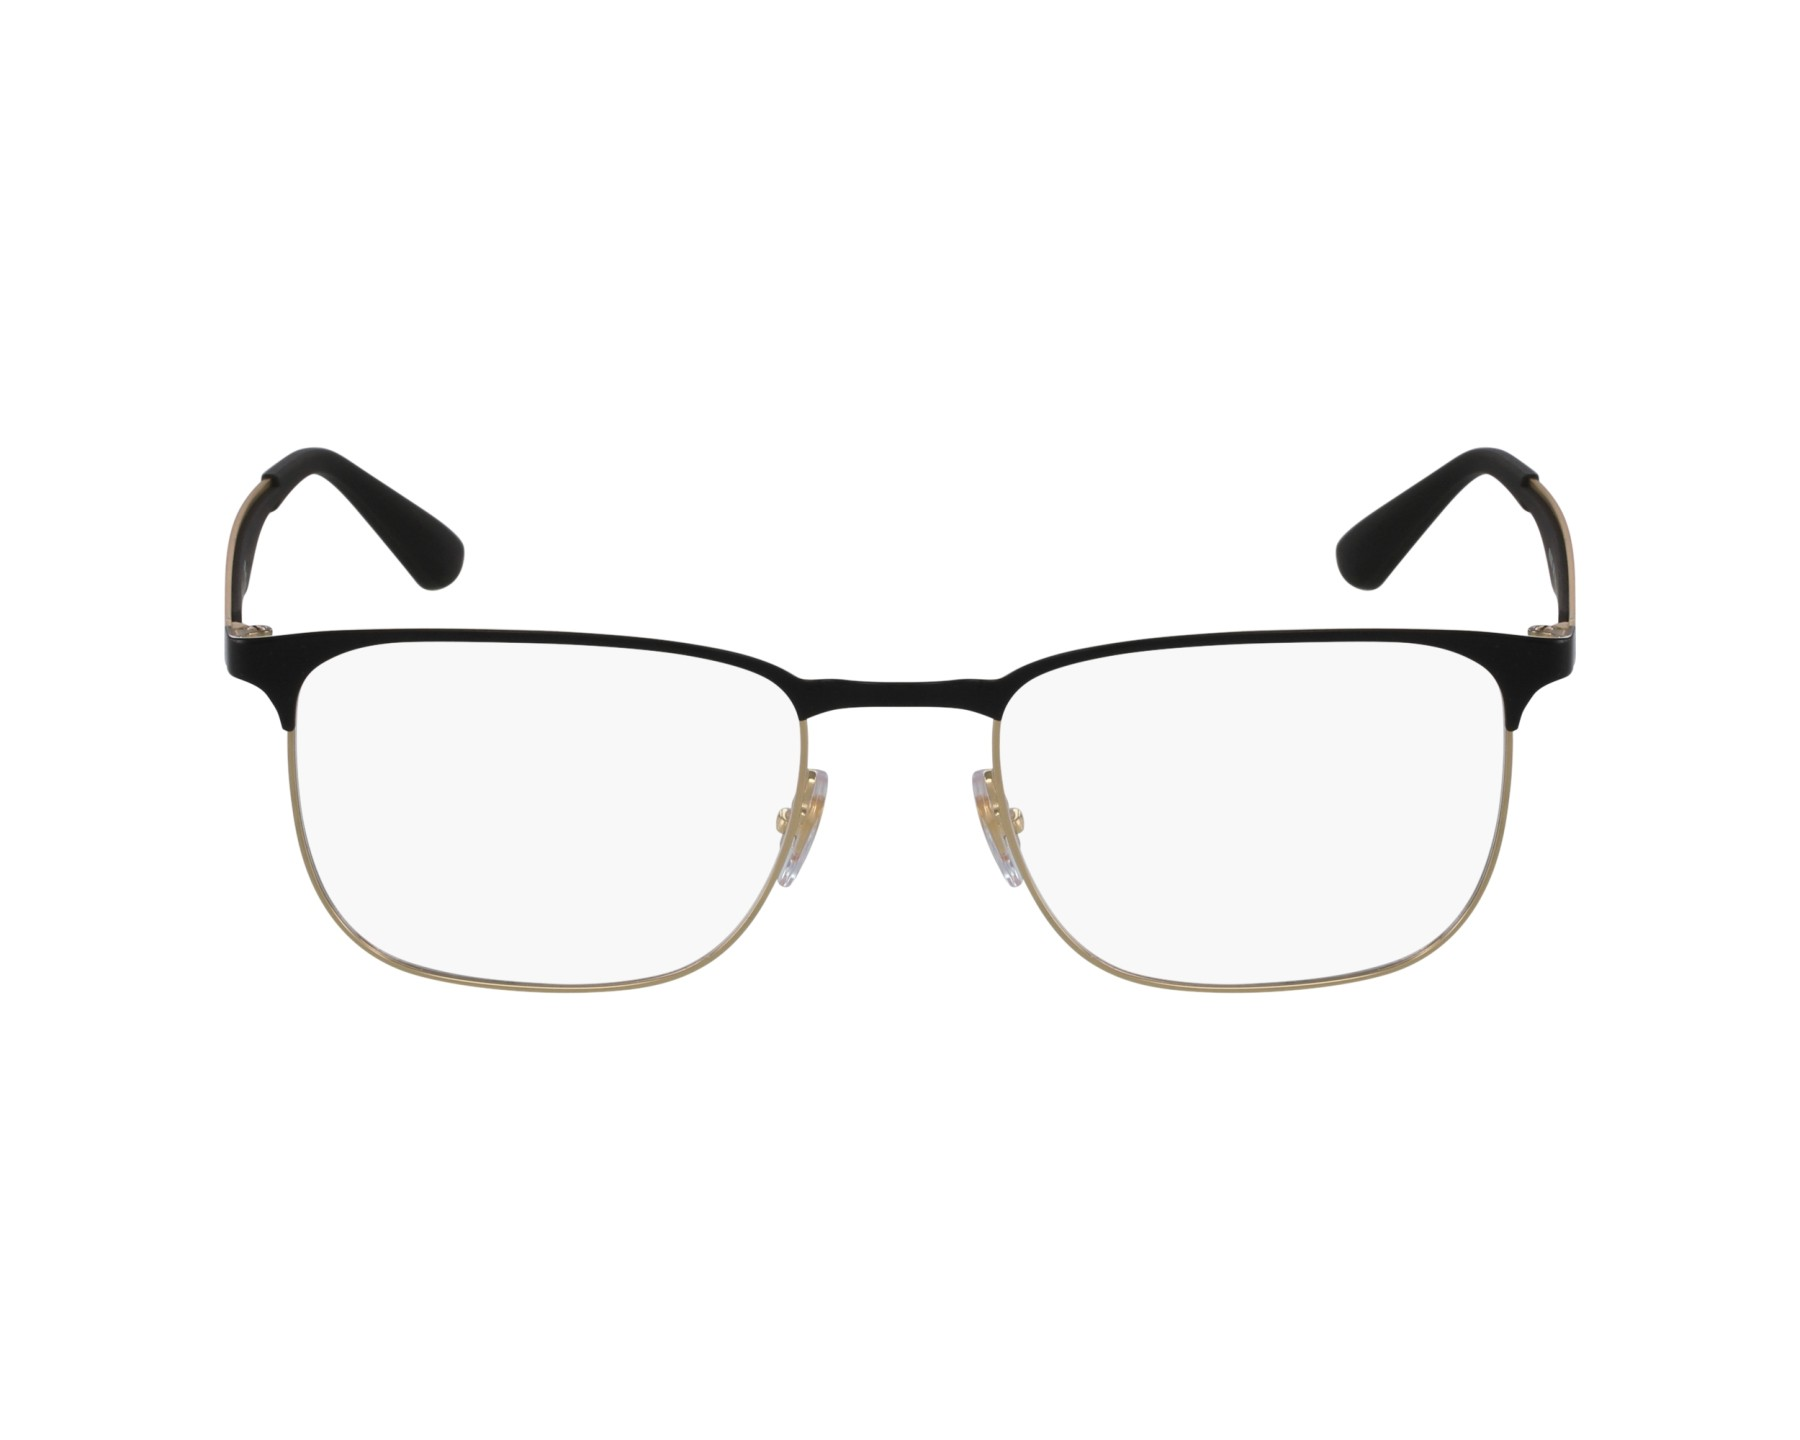 90b769d55b ... czech eyeglasses ray ban rx 6363 2890 54 18 black gold profile view  a0658 e8401